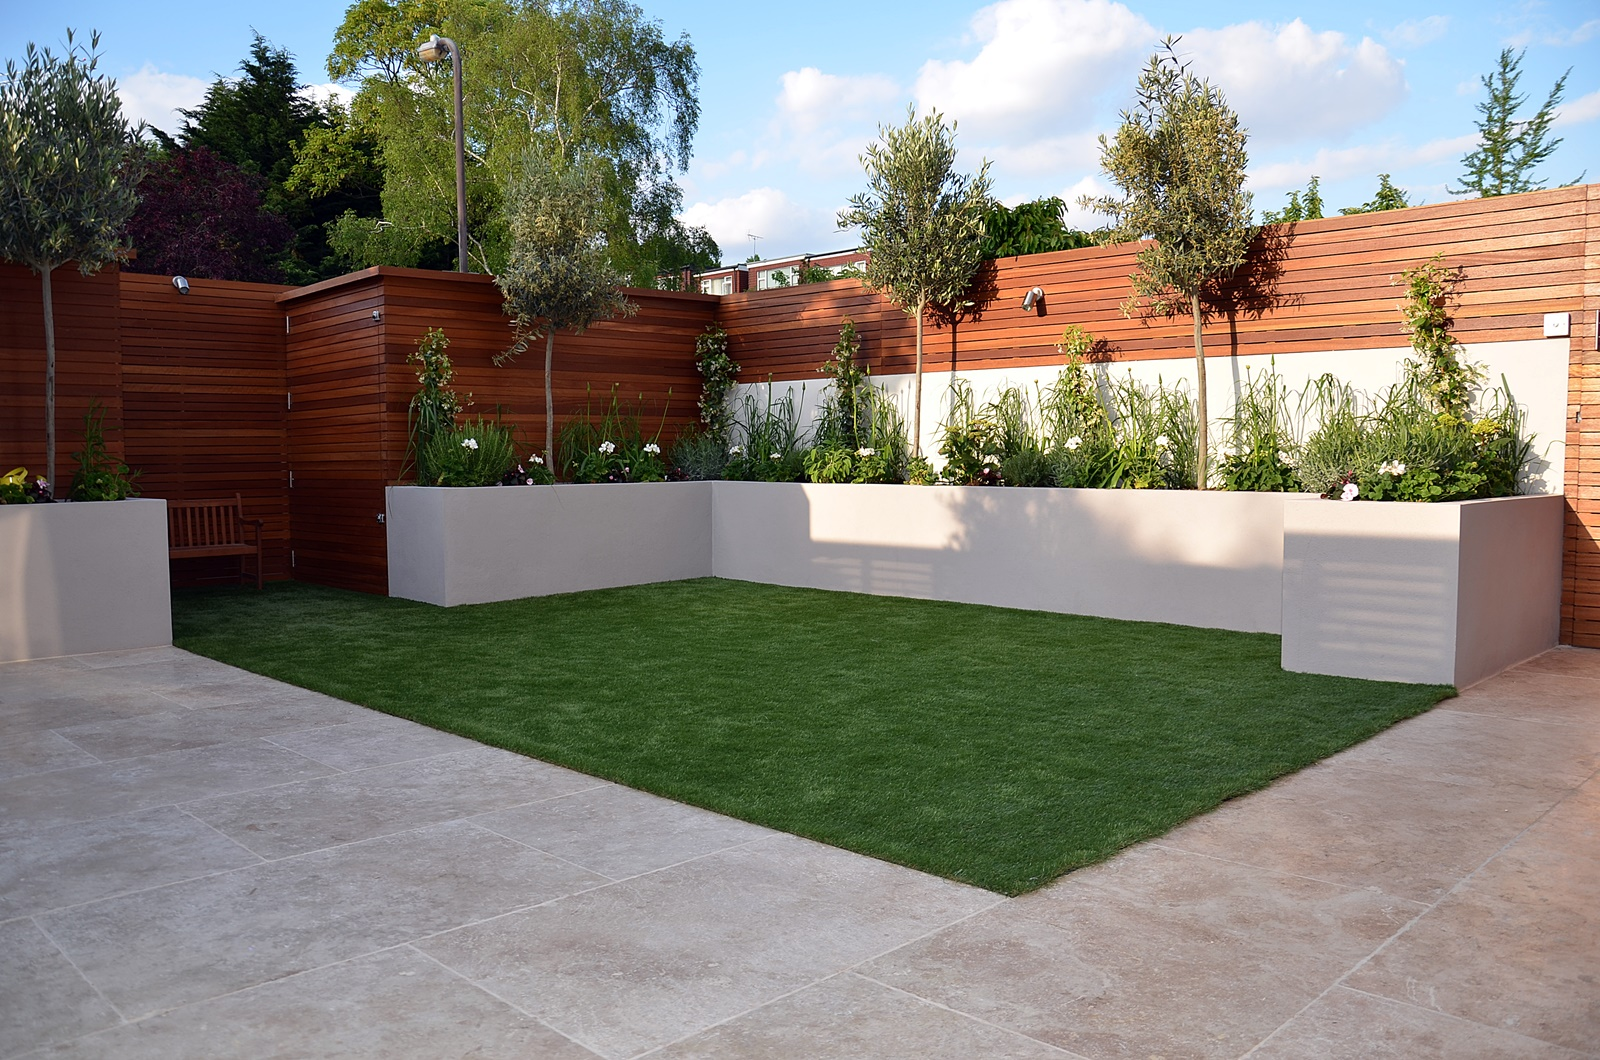 Modern garden design fulham chelsea clapham battersea for Patio designs for small gardens